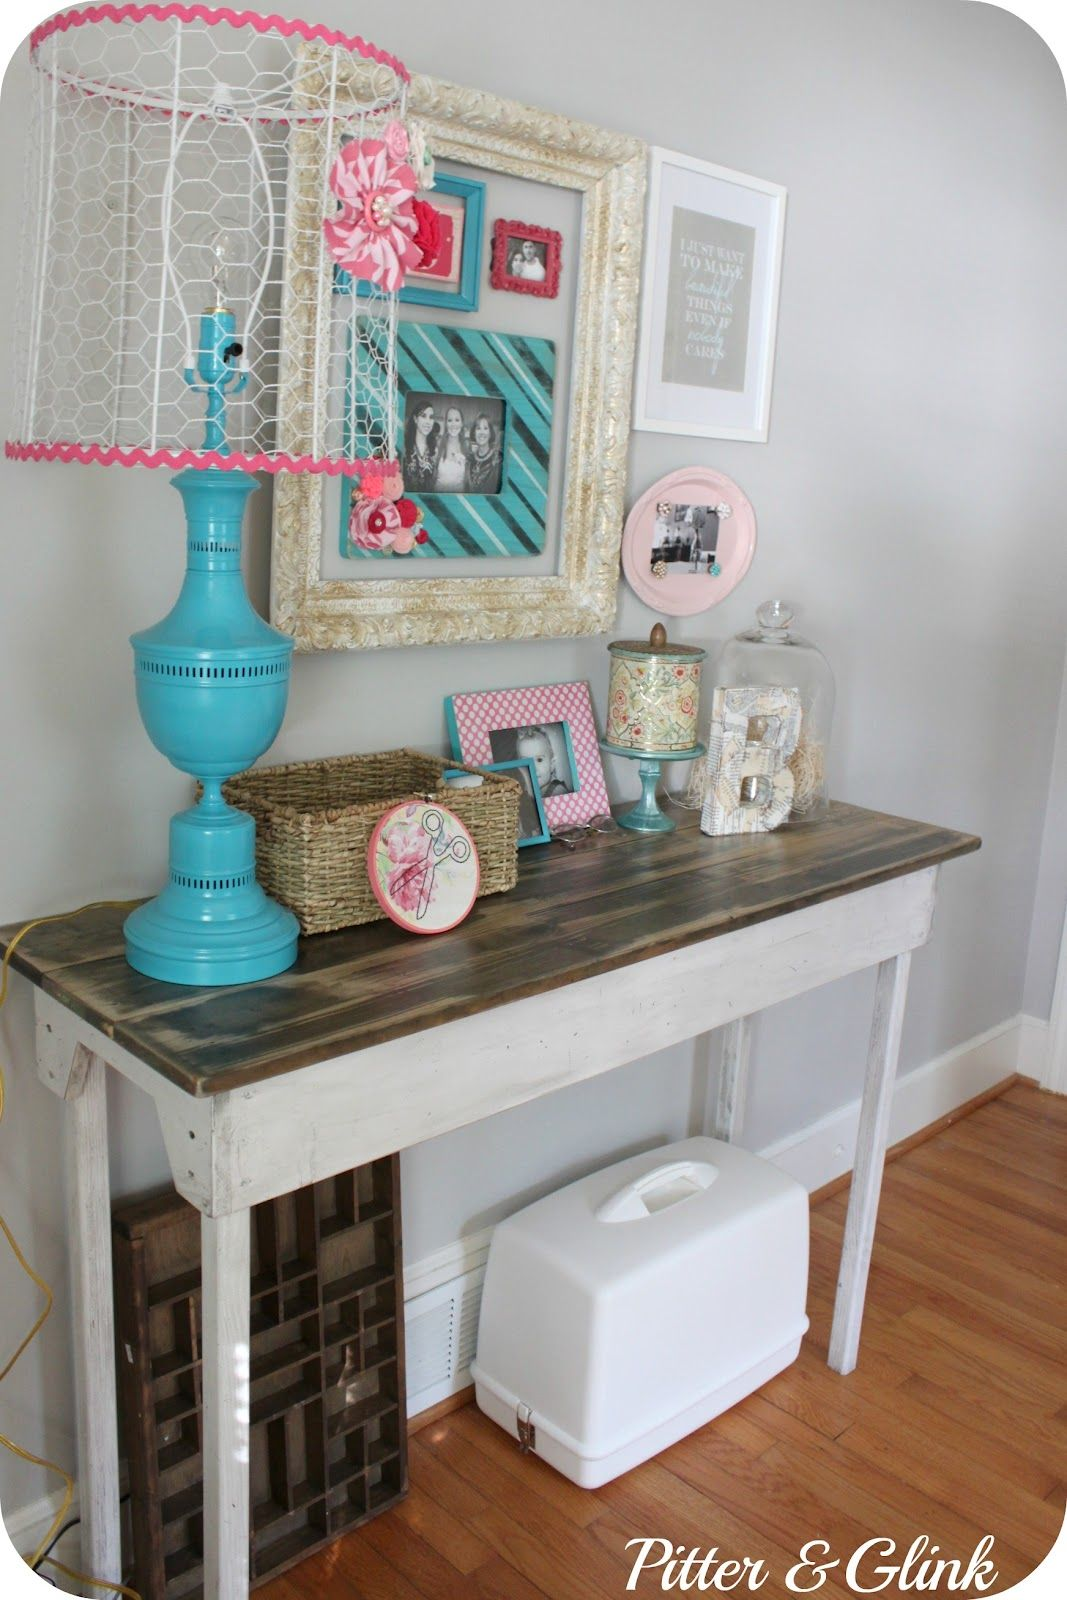 PitterAndGlink: {DIY $20 Vintage-Looking Table}-how cute is all of this?!